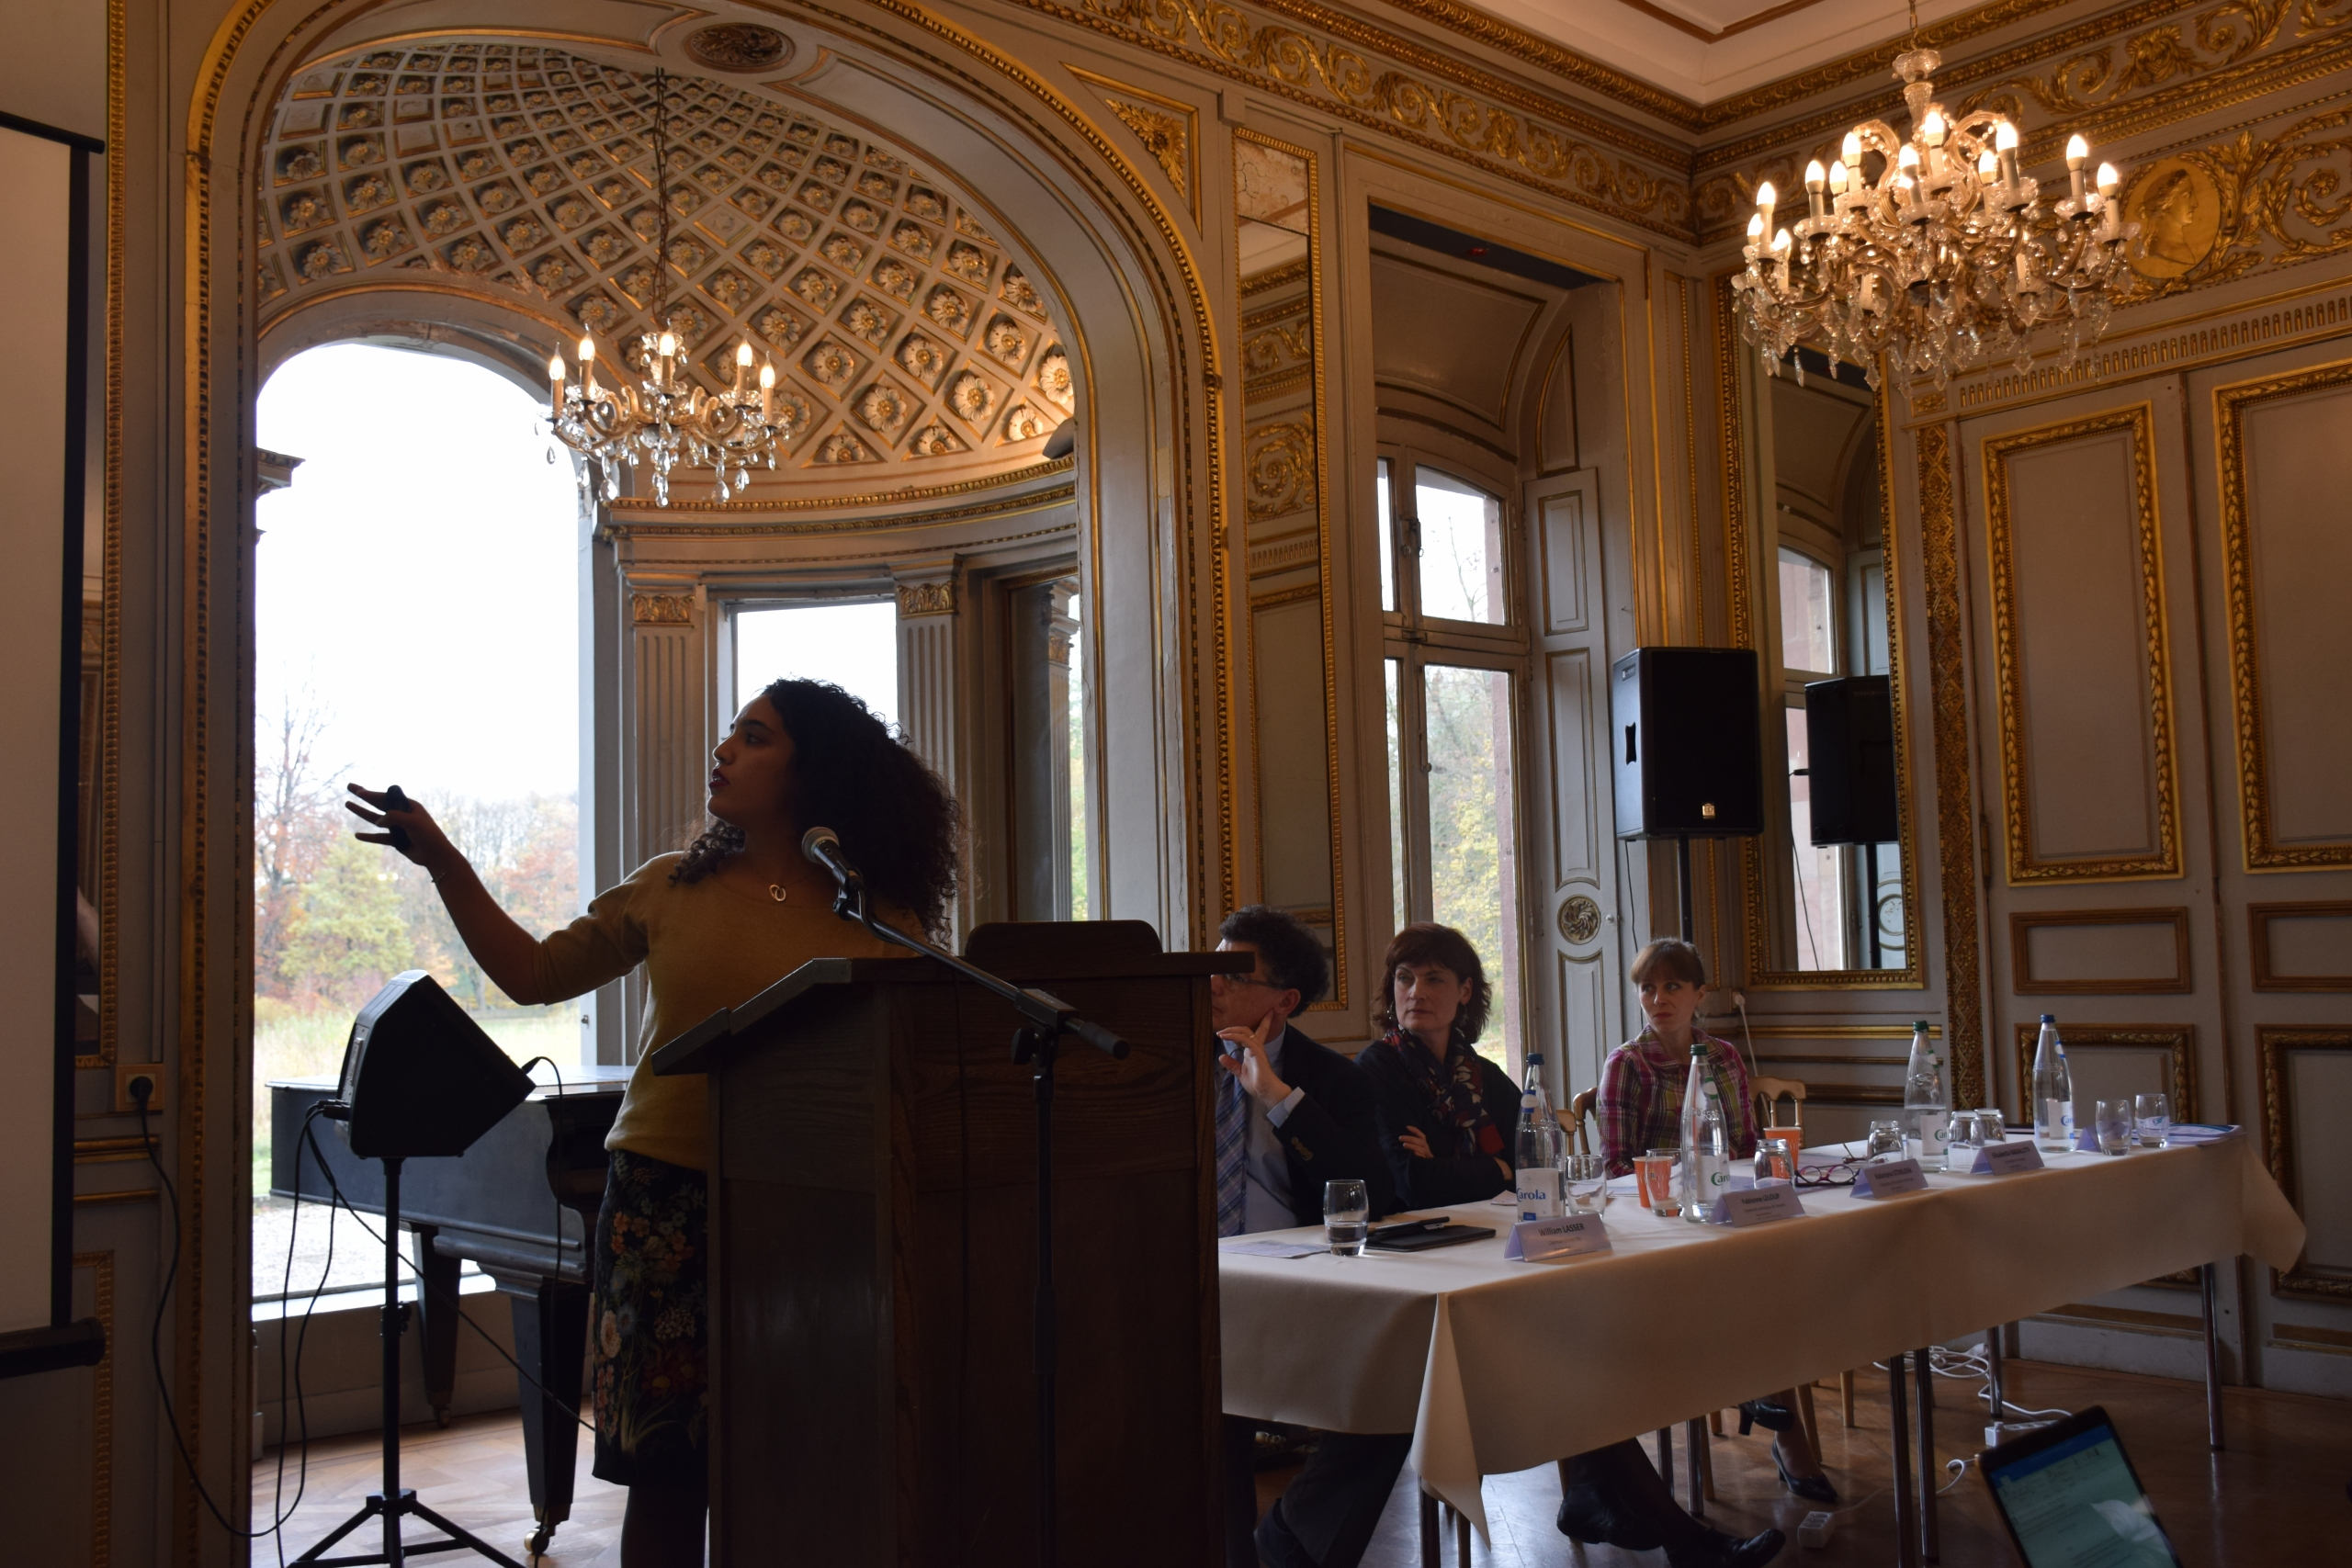 Student giving a presentation at the Chateau de Pourtales Castle Talks Symposium at the European Study Center in Strasbourg, France